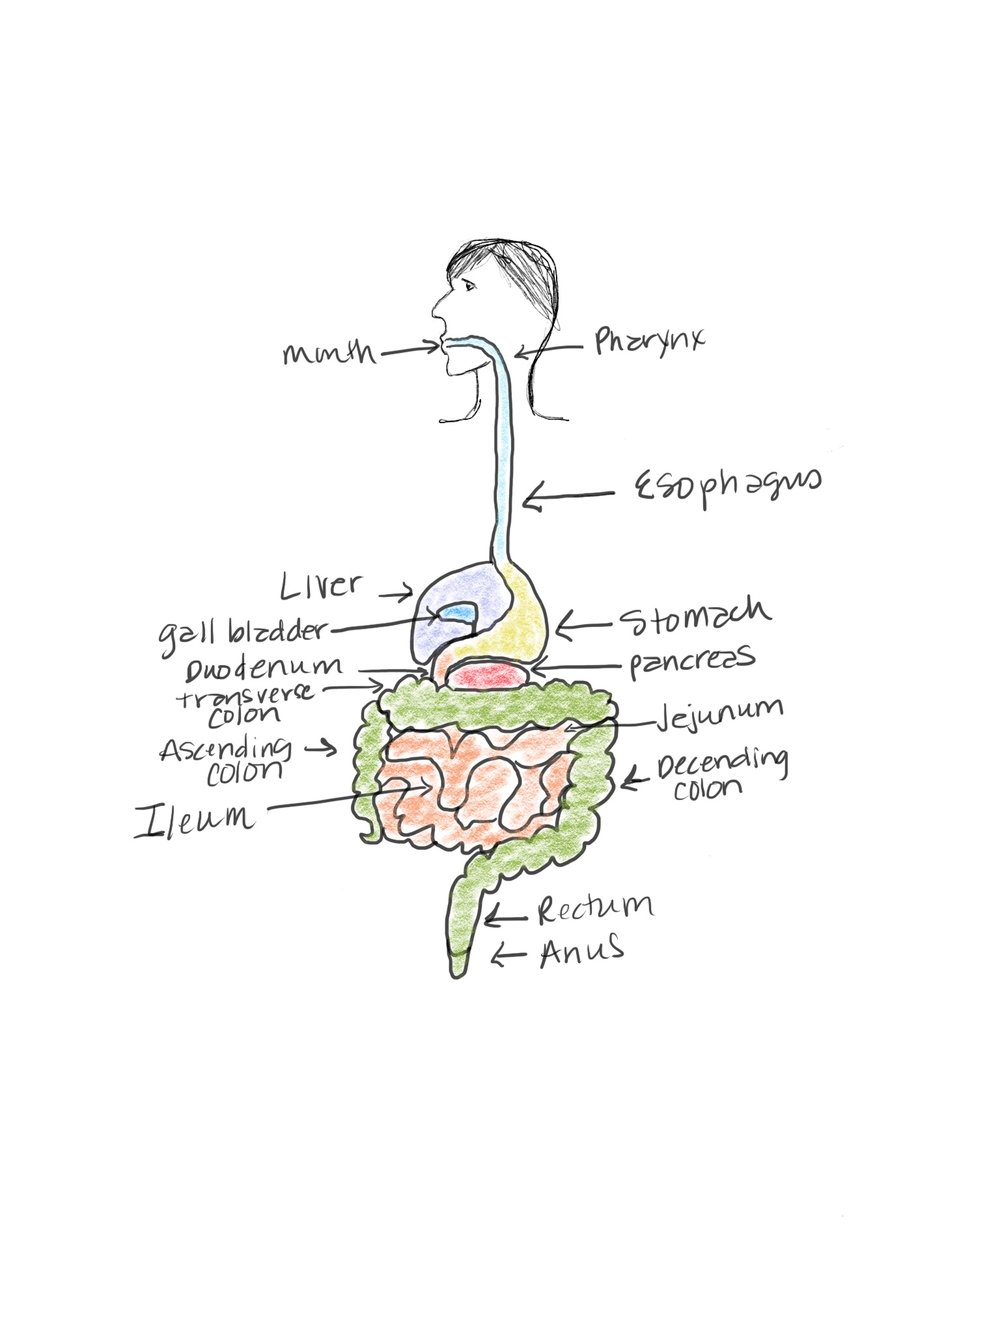 Digestive System Drawing - Balancing Bites Nutrition.JPG